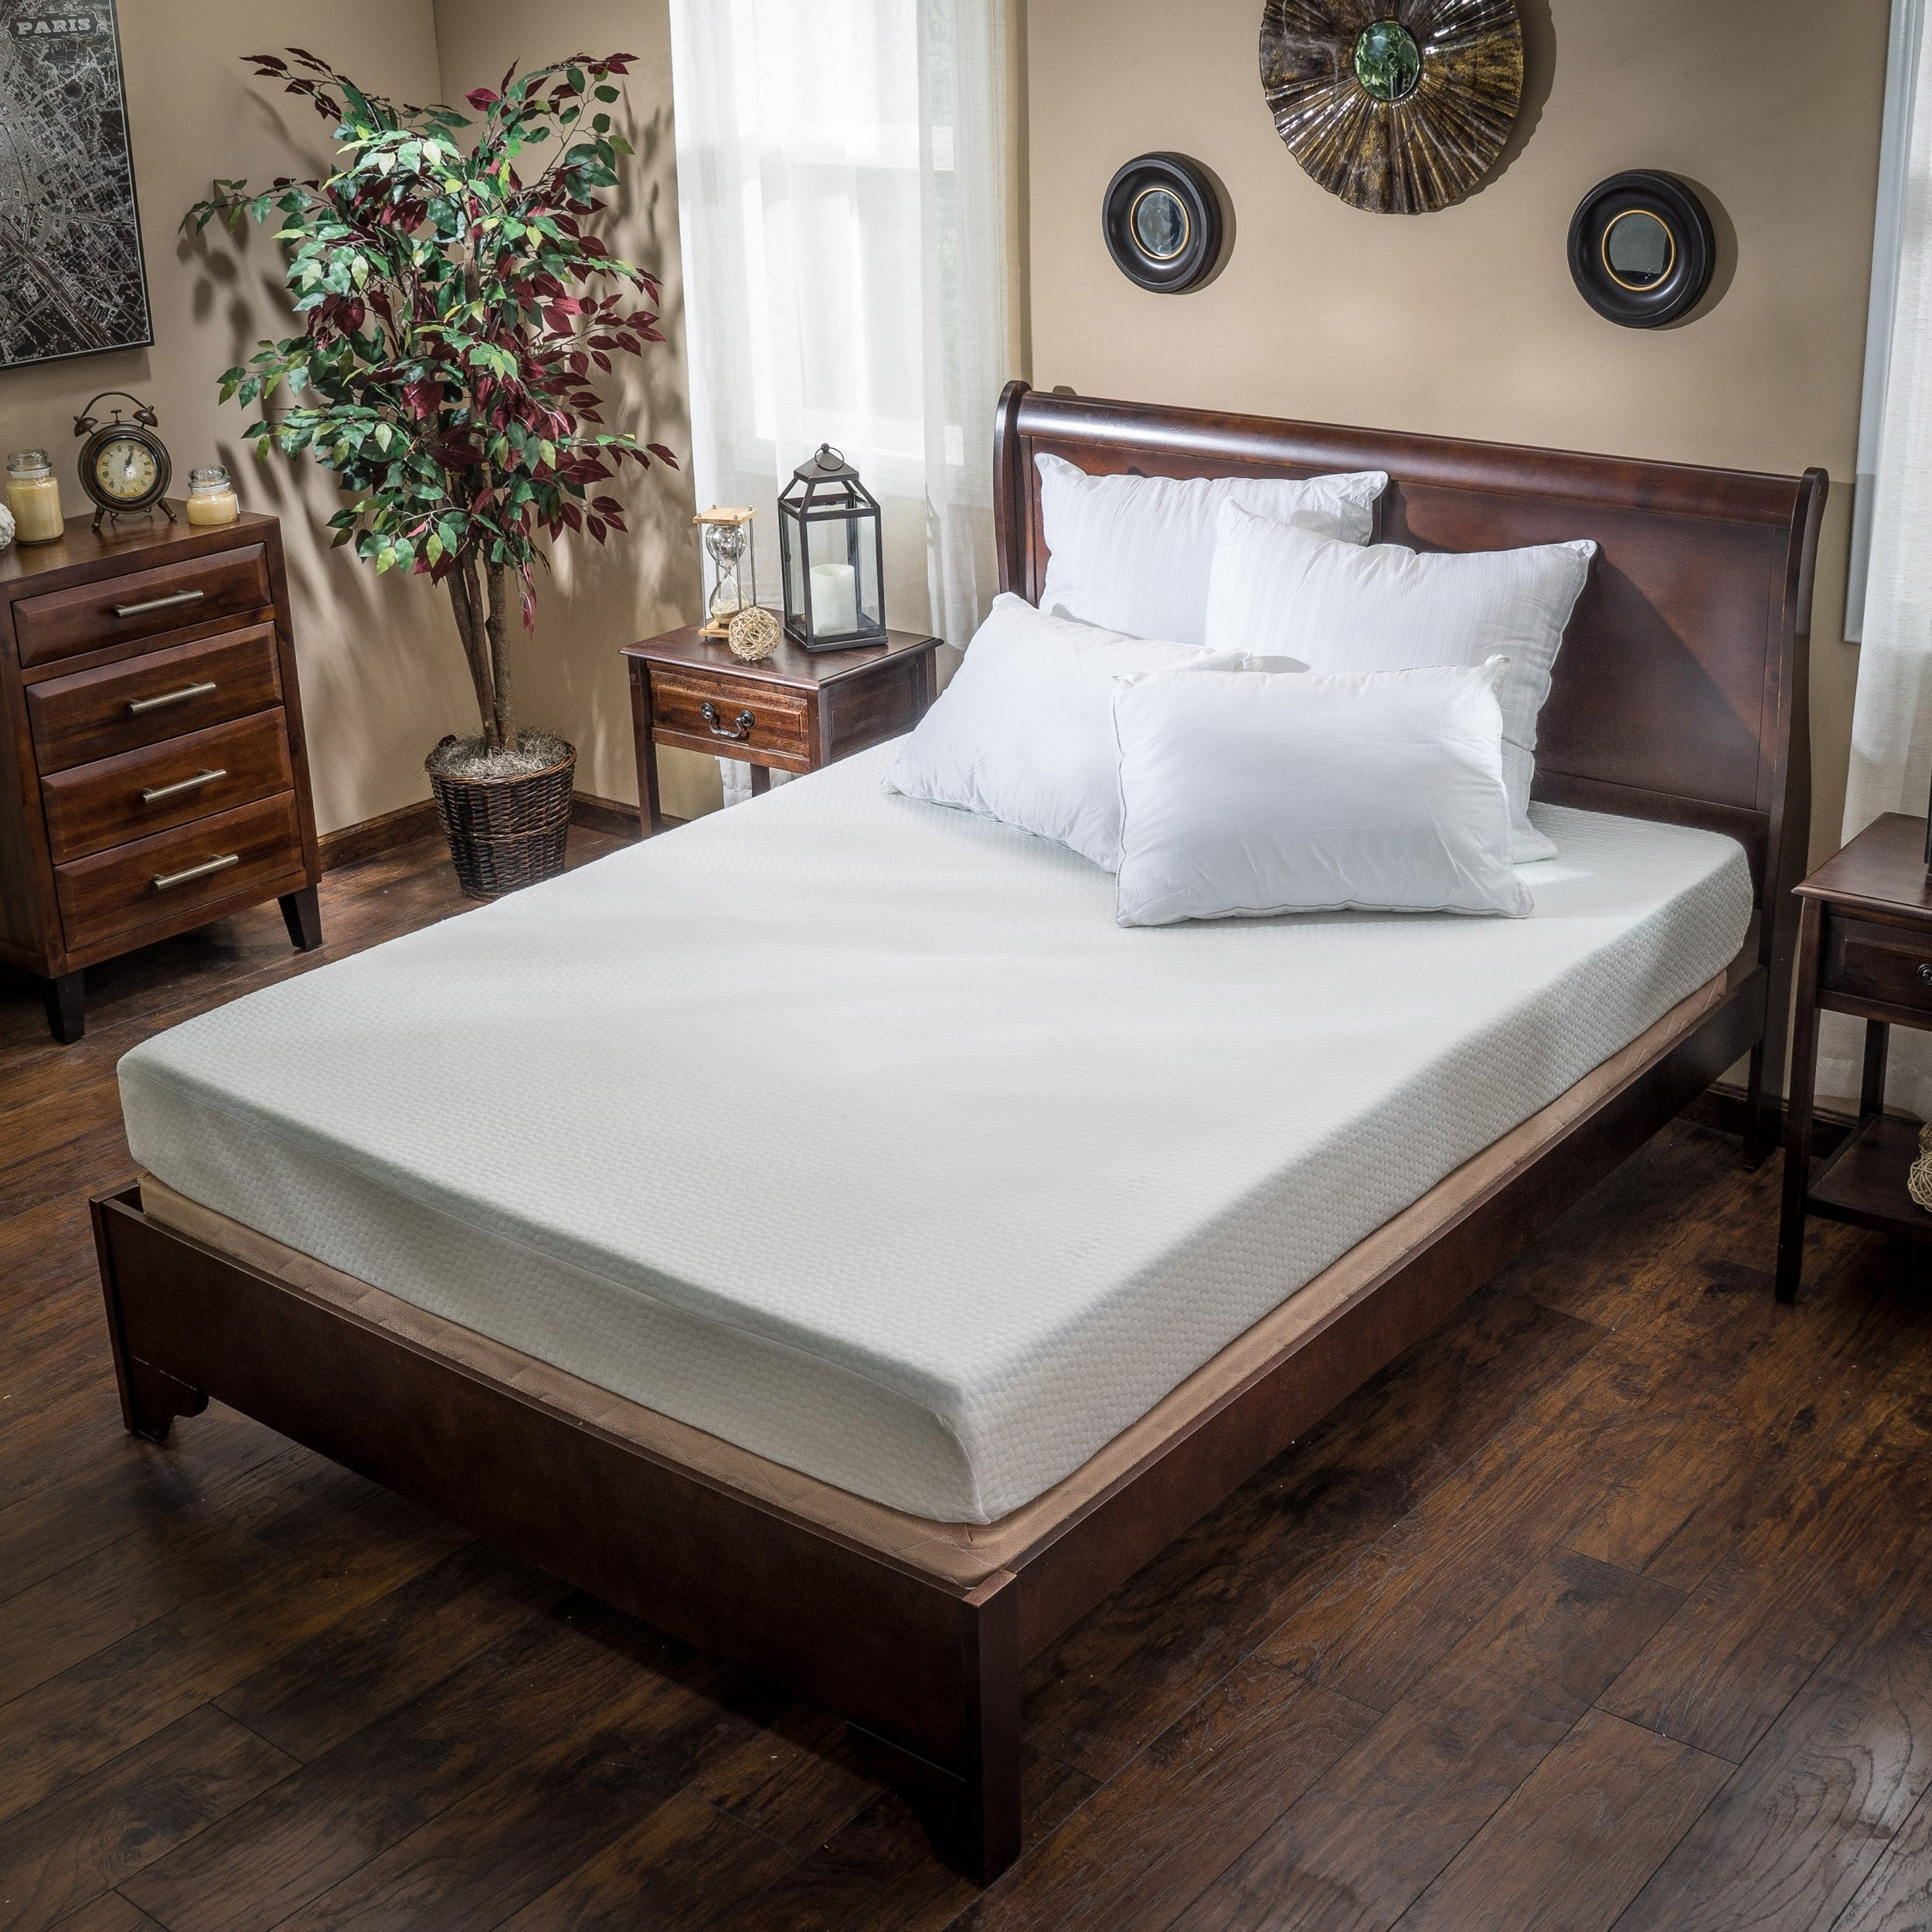 Choice 8 inch Full size Memory Foam Mattress by Christopher Knight